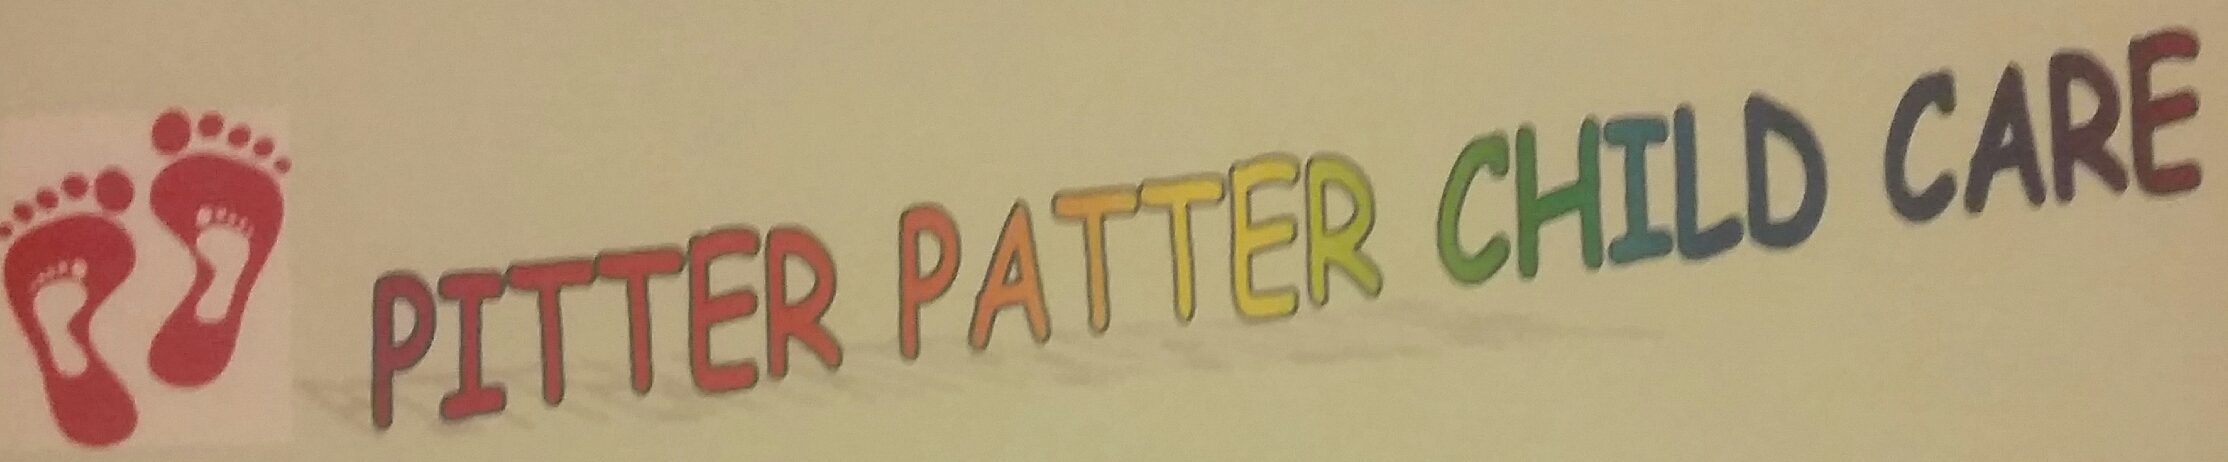 Pitter Patter Child Care